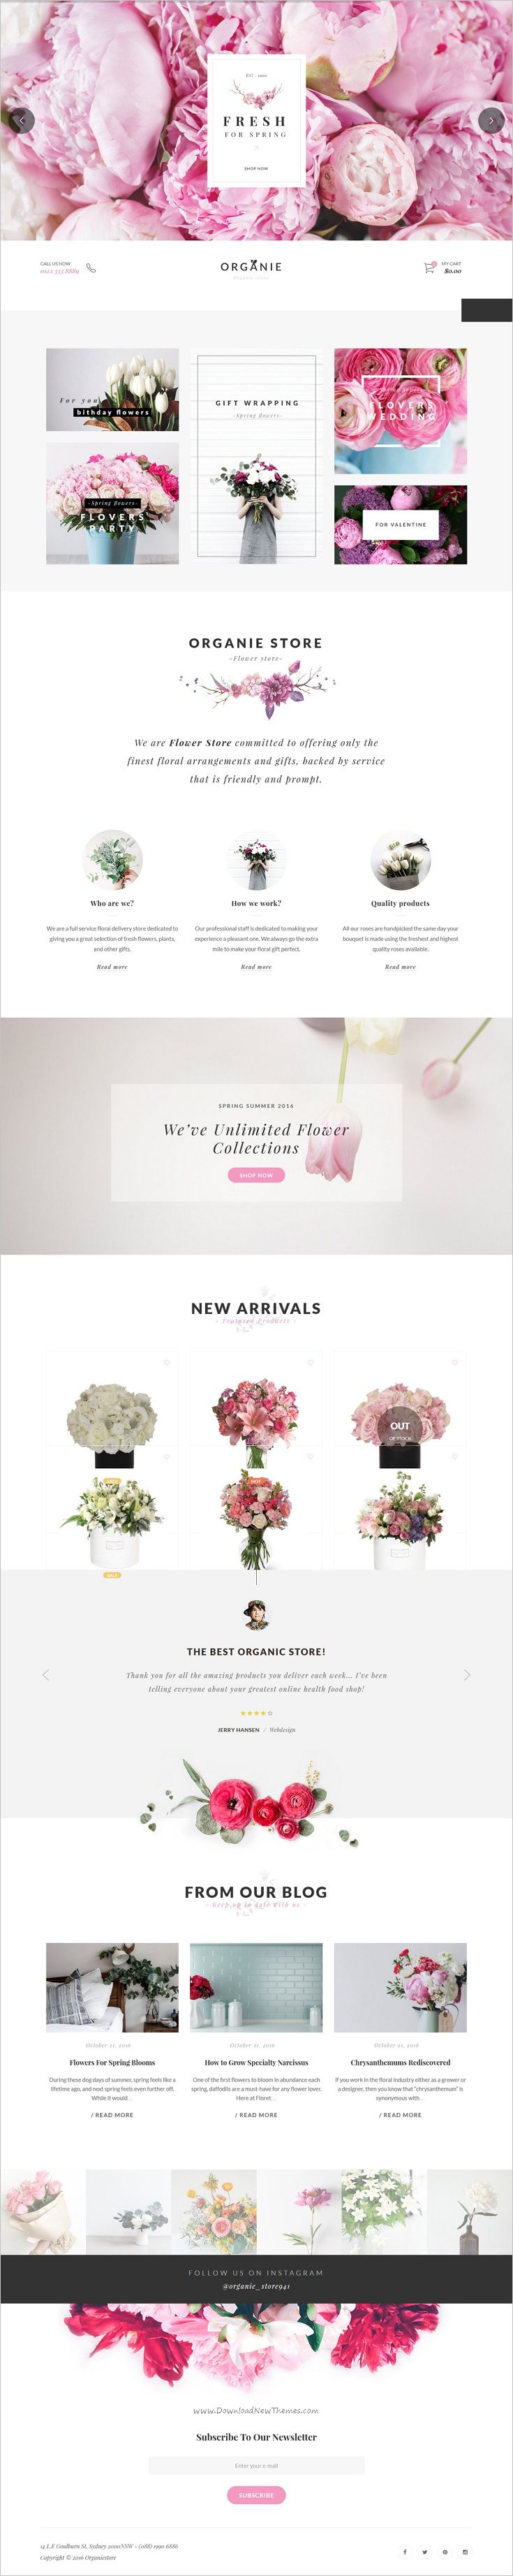 Organie is a wonderful responsive 12in1 WooCommerce #WordPress theme for #florist organic #store, farm, cake and flower shop eCommerce website download now➩ https://themeforest.net/item/organie-an-organic-store-farm-cake-flower-shop-woocommerce-theme/18777939?ref=Datasata